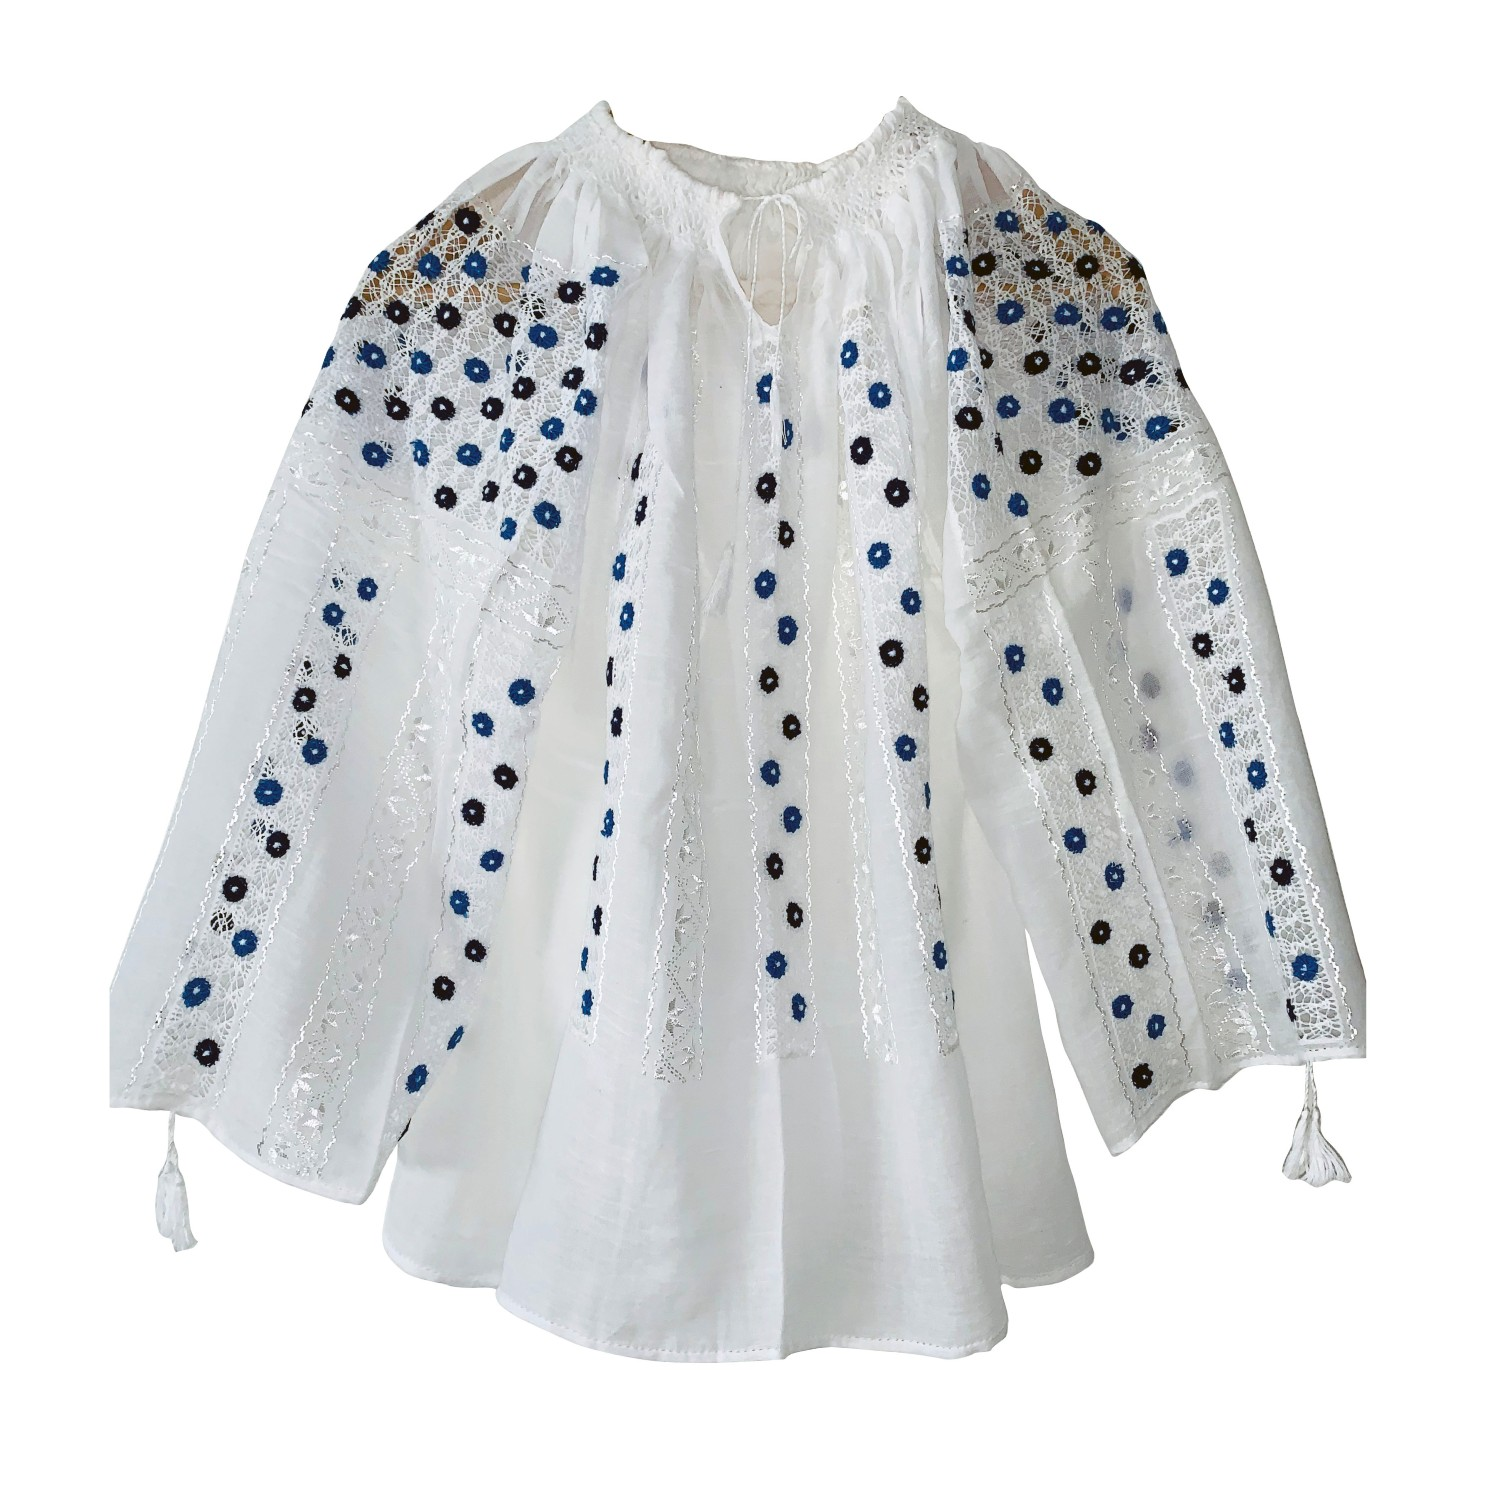 IE TRADIȚIONALĂ COD 17_Ie_Blouse_hand made_traditional_RafGallery_romanian_art_VR_gallery